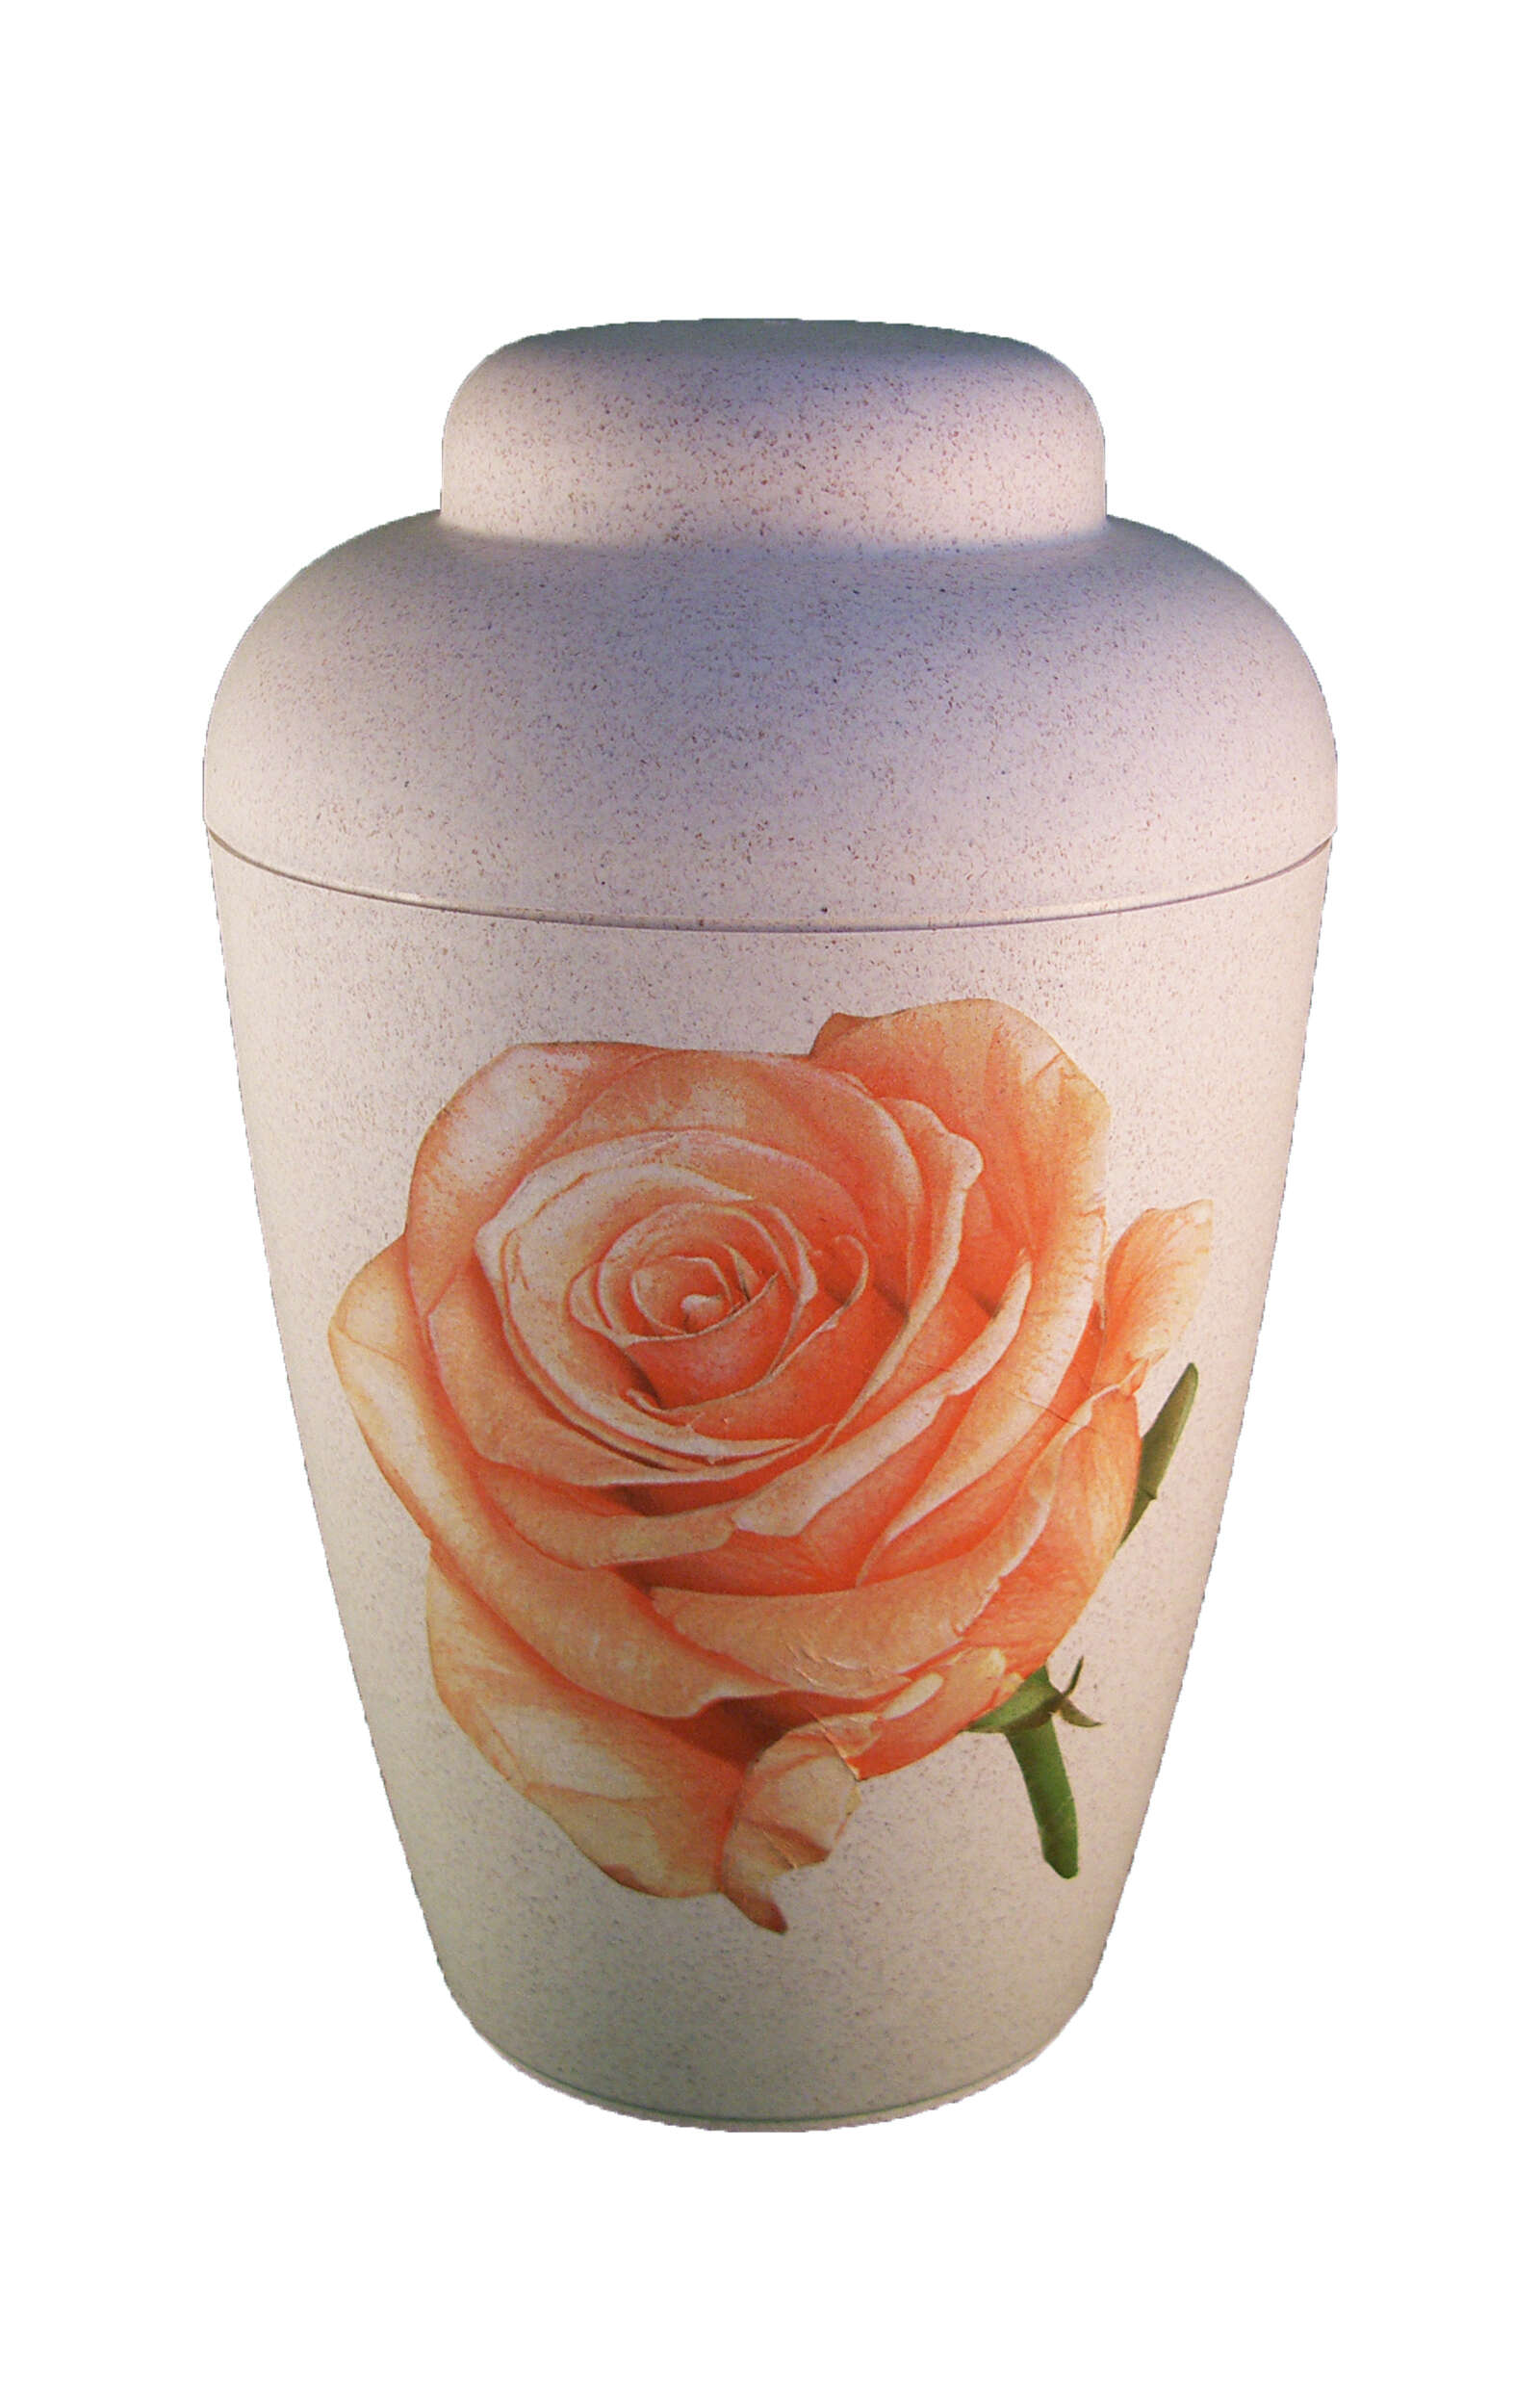 en BVR1702 bio funeral urns for human ashes vale pink roses